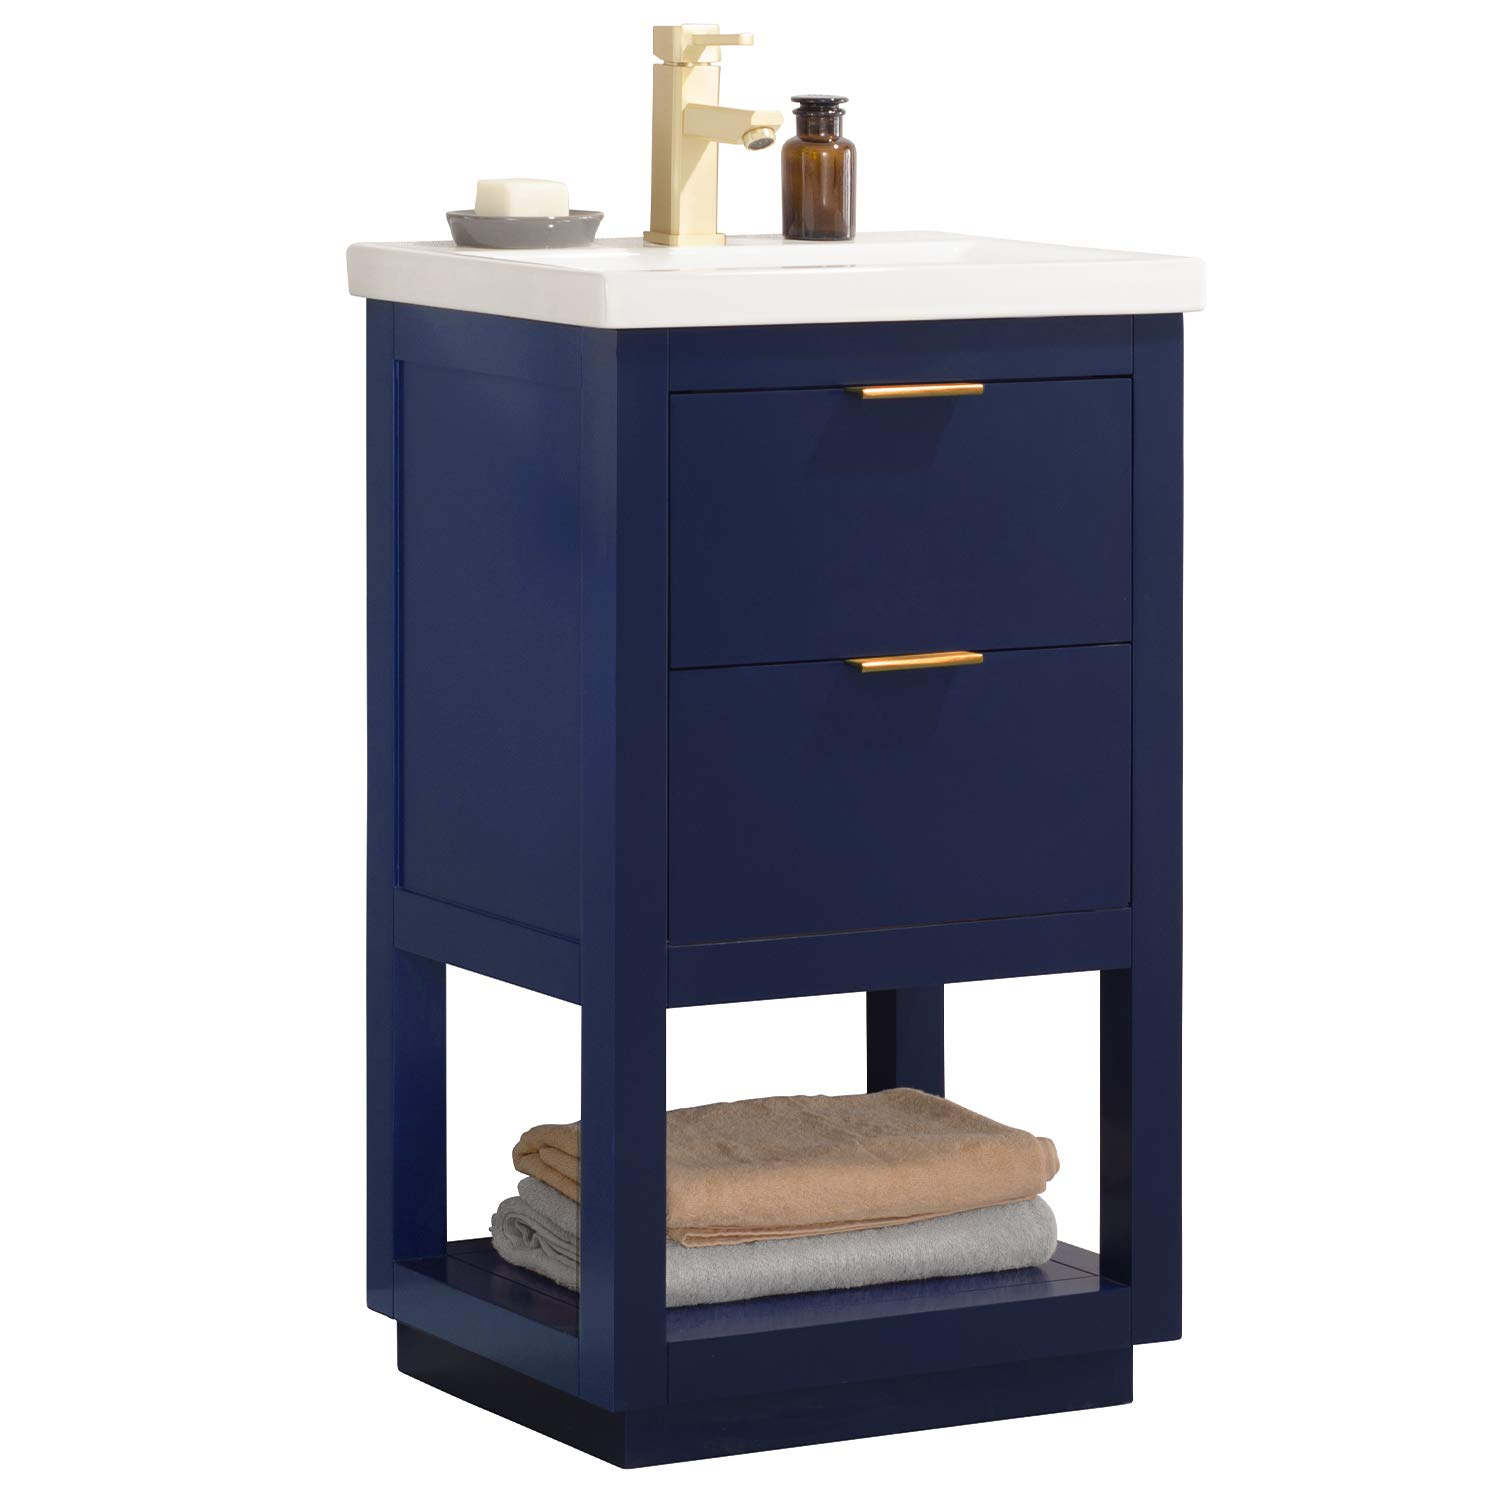 "Luca Kitchen & Bath LC20GBP Sydney 20"" Bathroom Vanity Set in Midnight Blue Made with Hardwood and Integrated Porcelain Top"